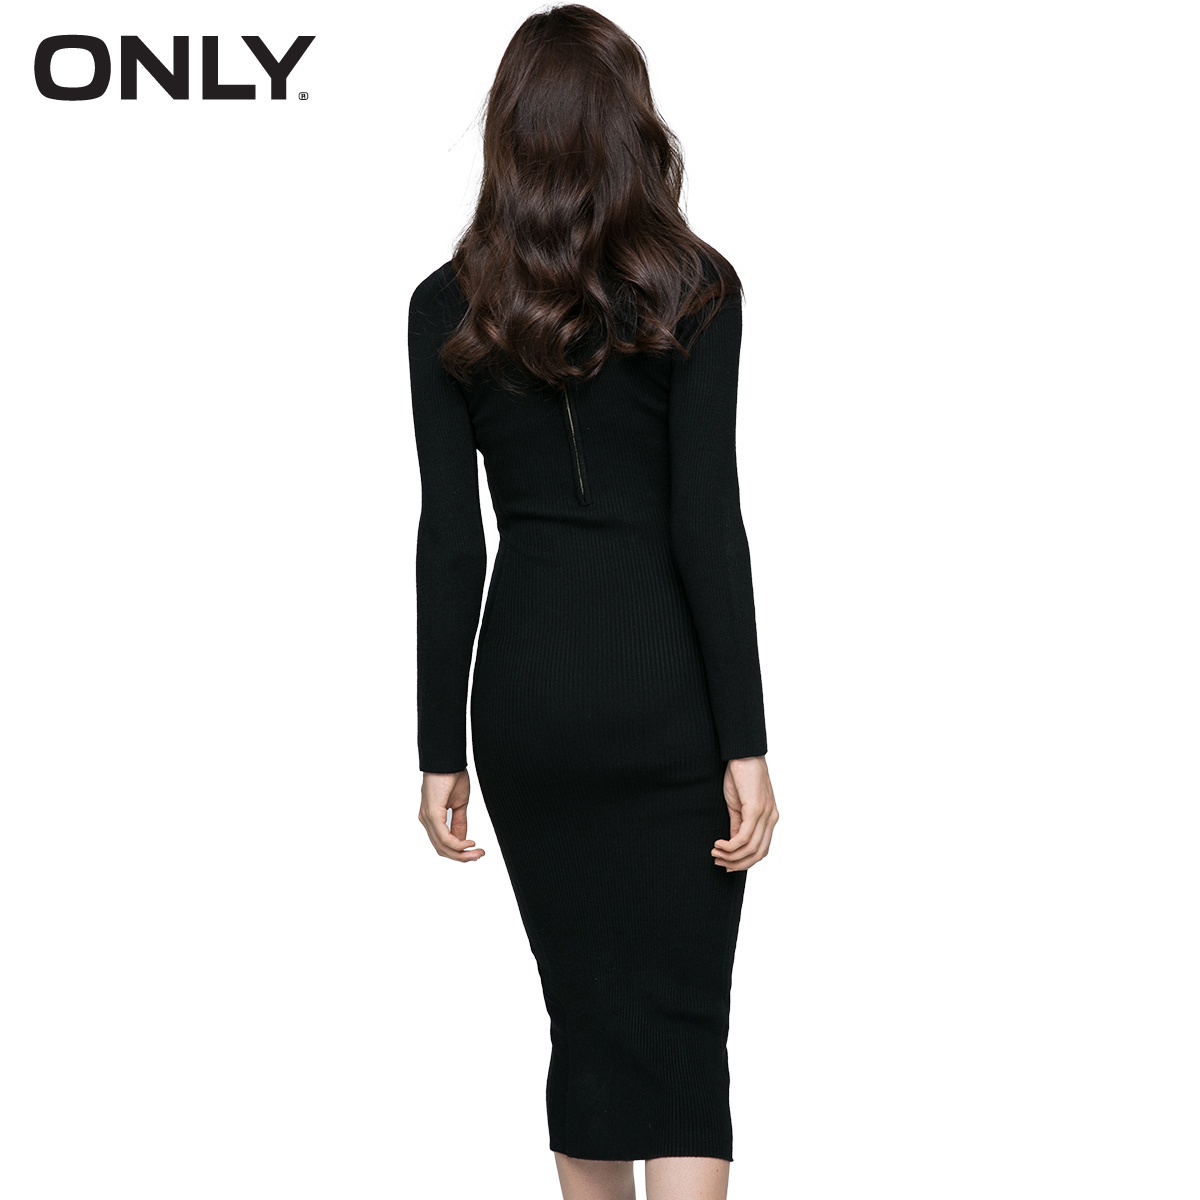 Women's dress ONLY 116346525 499 40